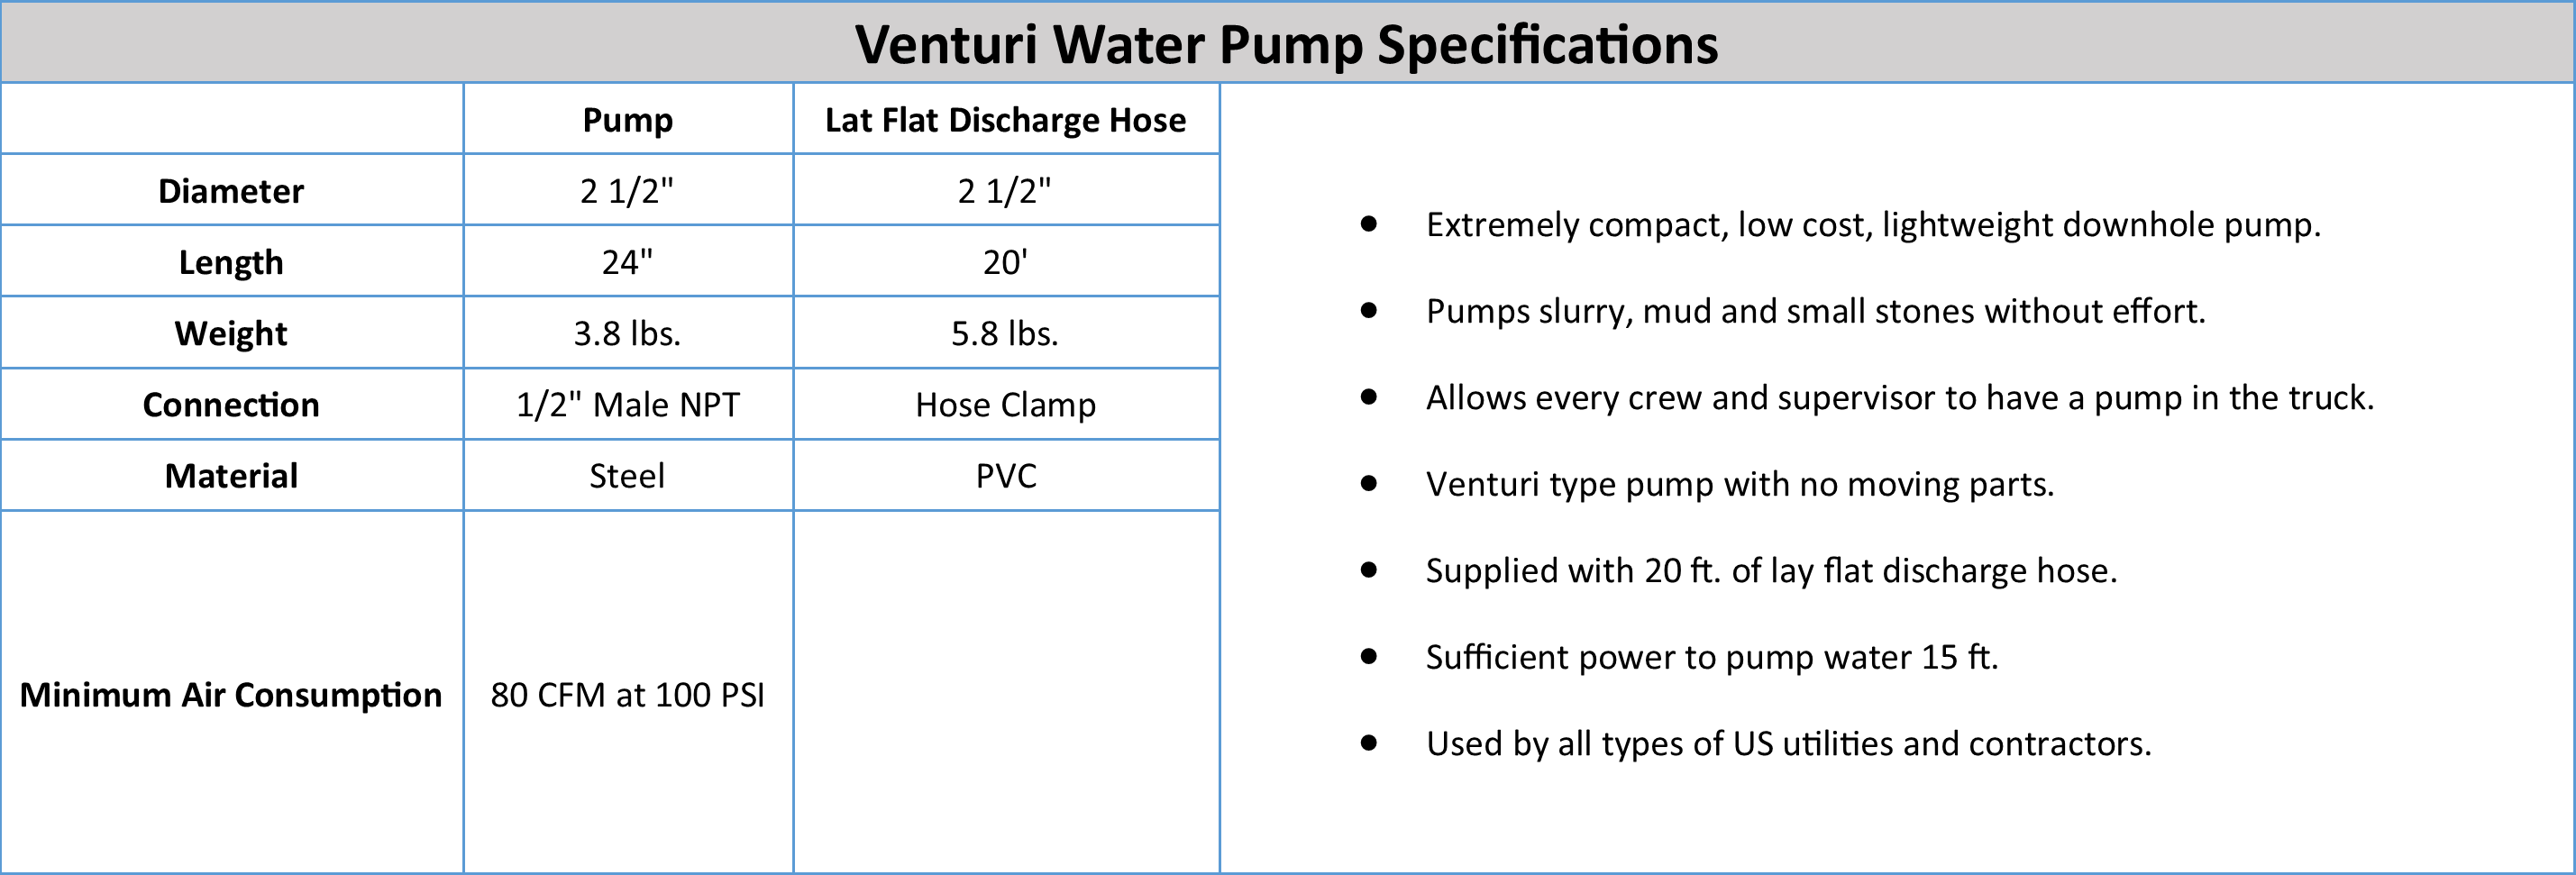 pump-table.png